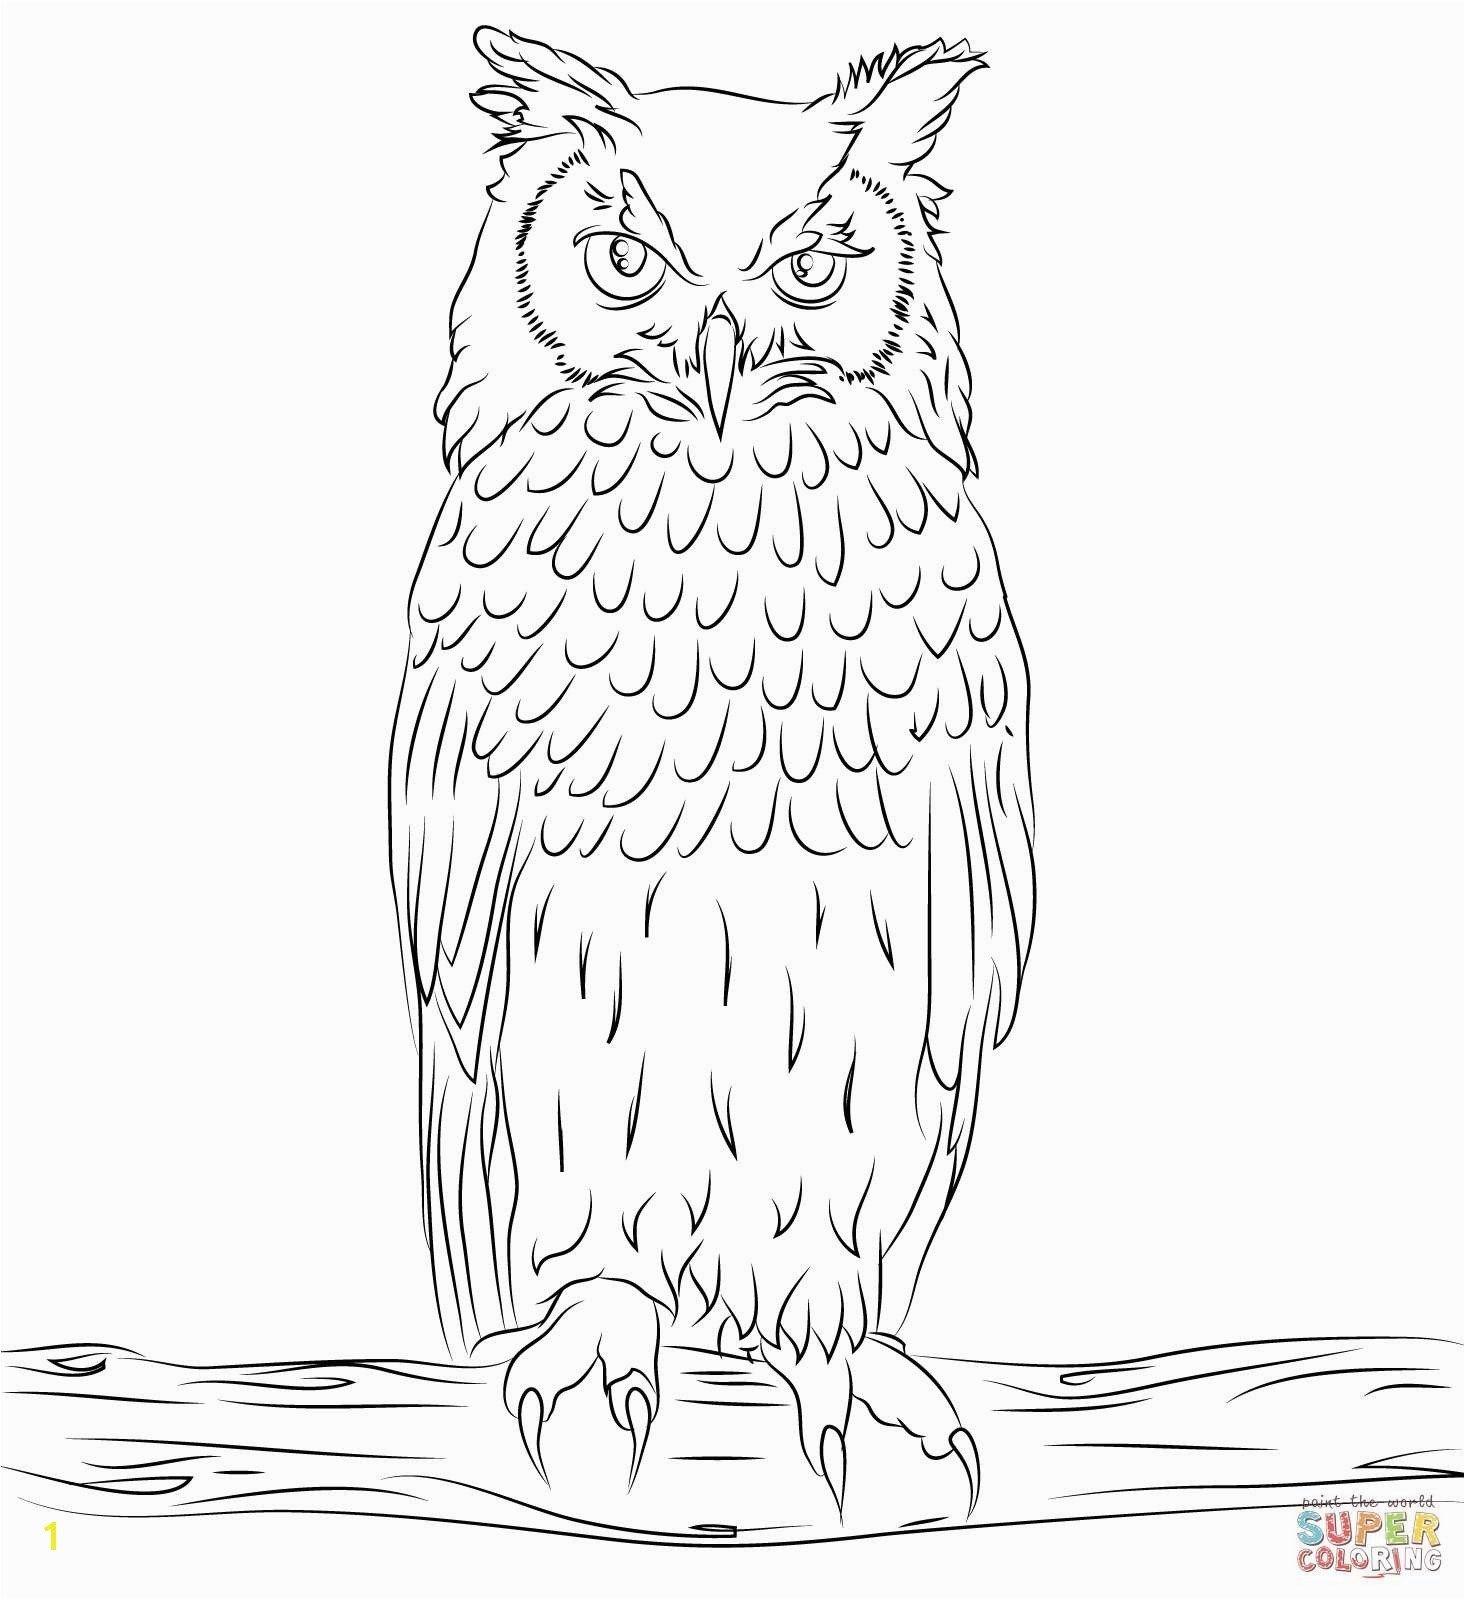 Printable Coloring Pages Owls Beautiful Fresh Free Owl Coloring Pages Elegant Printable Cds 0d Printable